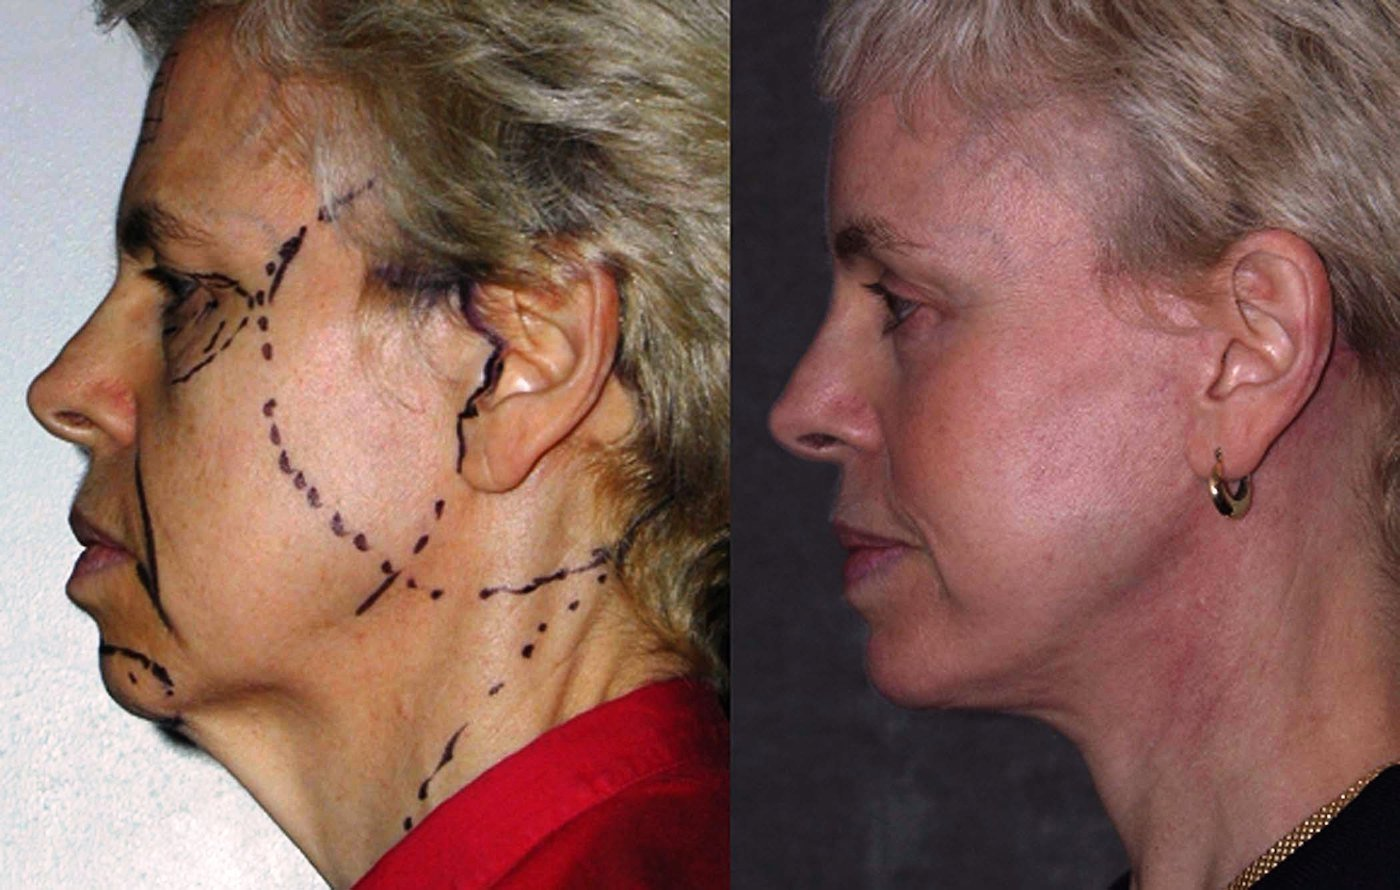 59 year old face lift brow lift eyelids with chin implant, one year follow-up side view